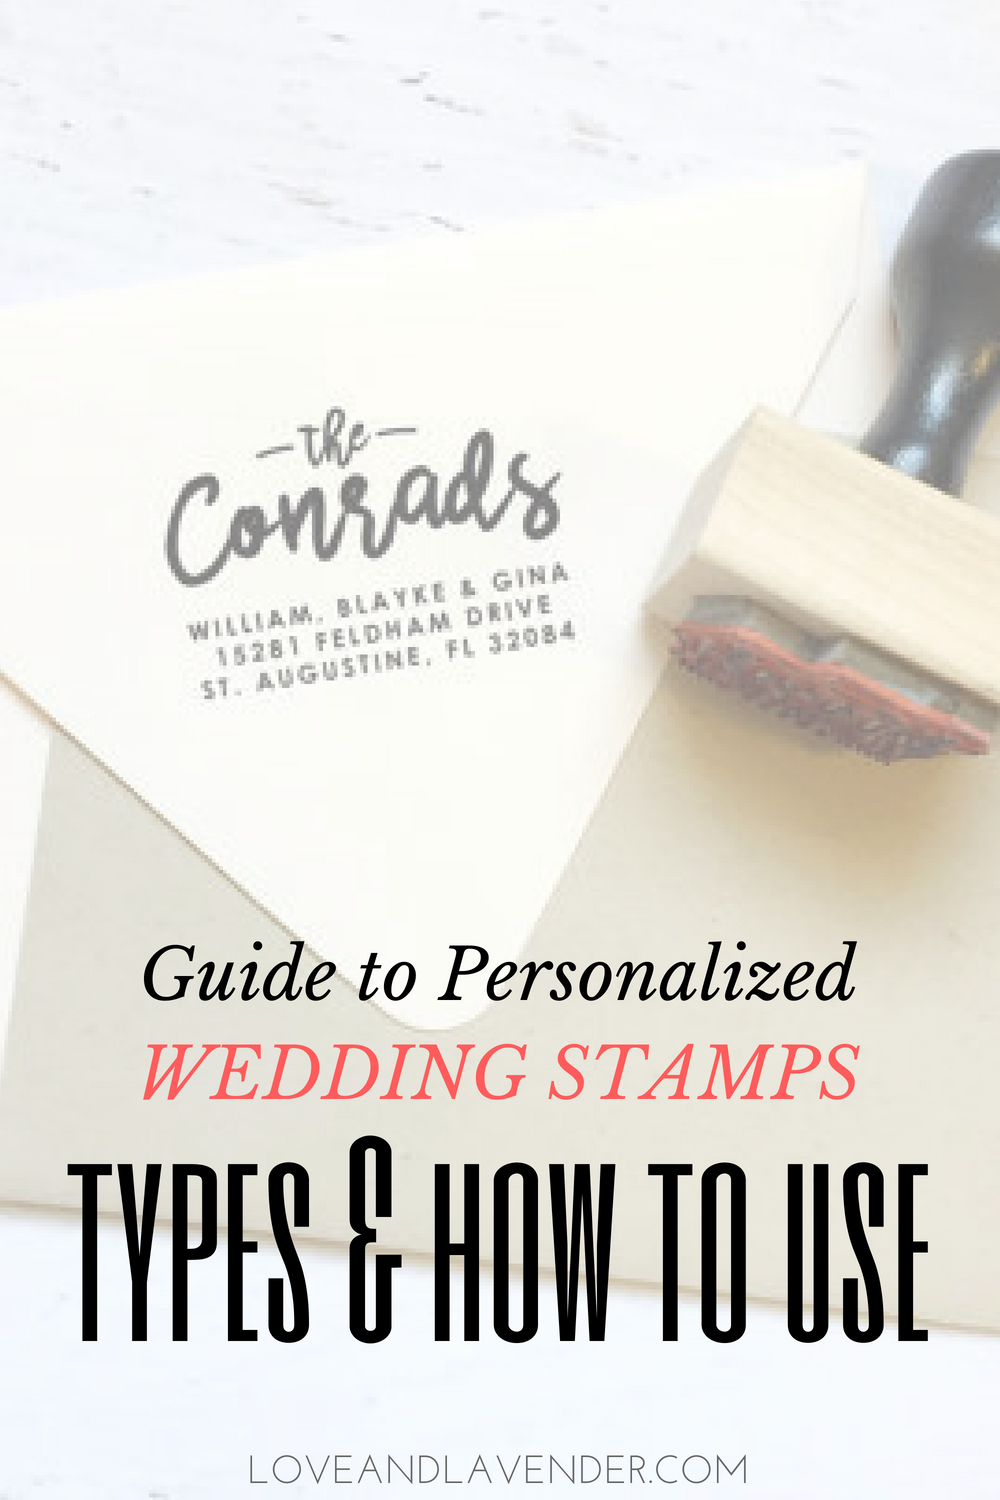 guide to personalized wedding stamps types how to use